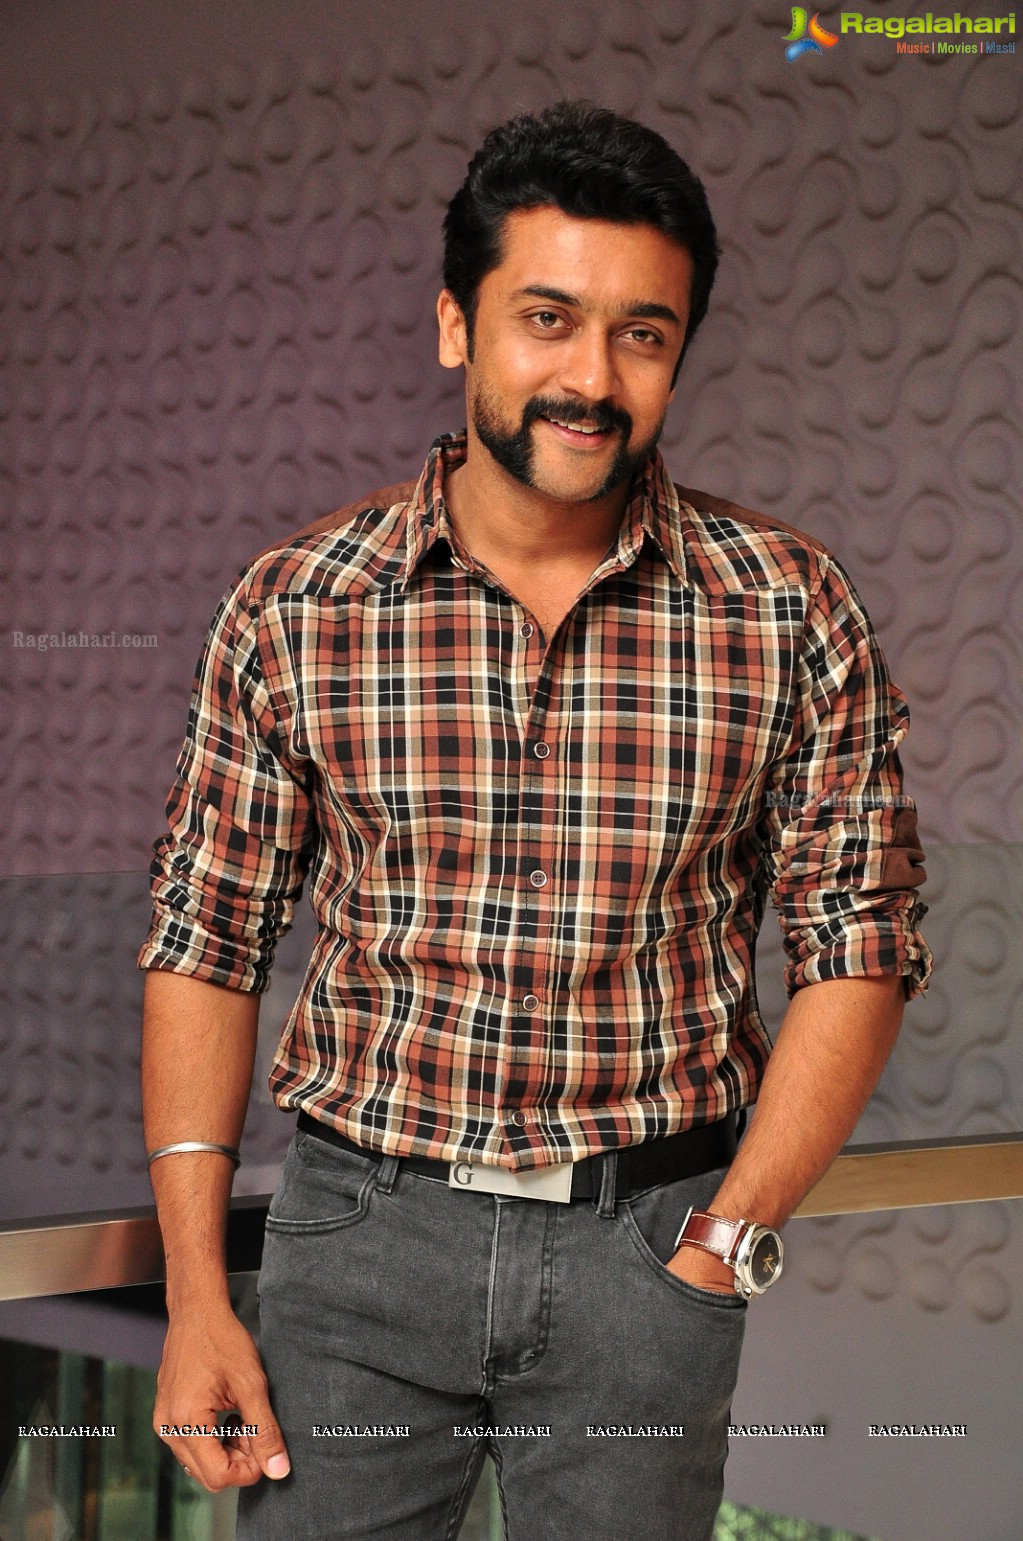 Surya image 21 telugu actress photo galleryimages photos surya image 21 telugu actress photo galleryimages photos pictures hd wallpapers thecheapjerseys Images